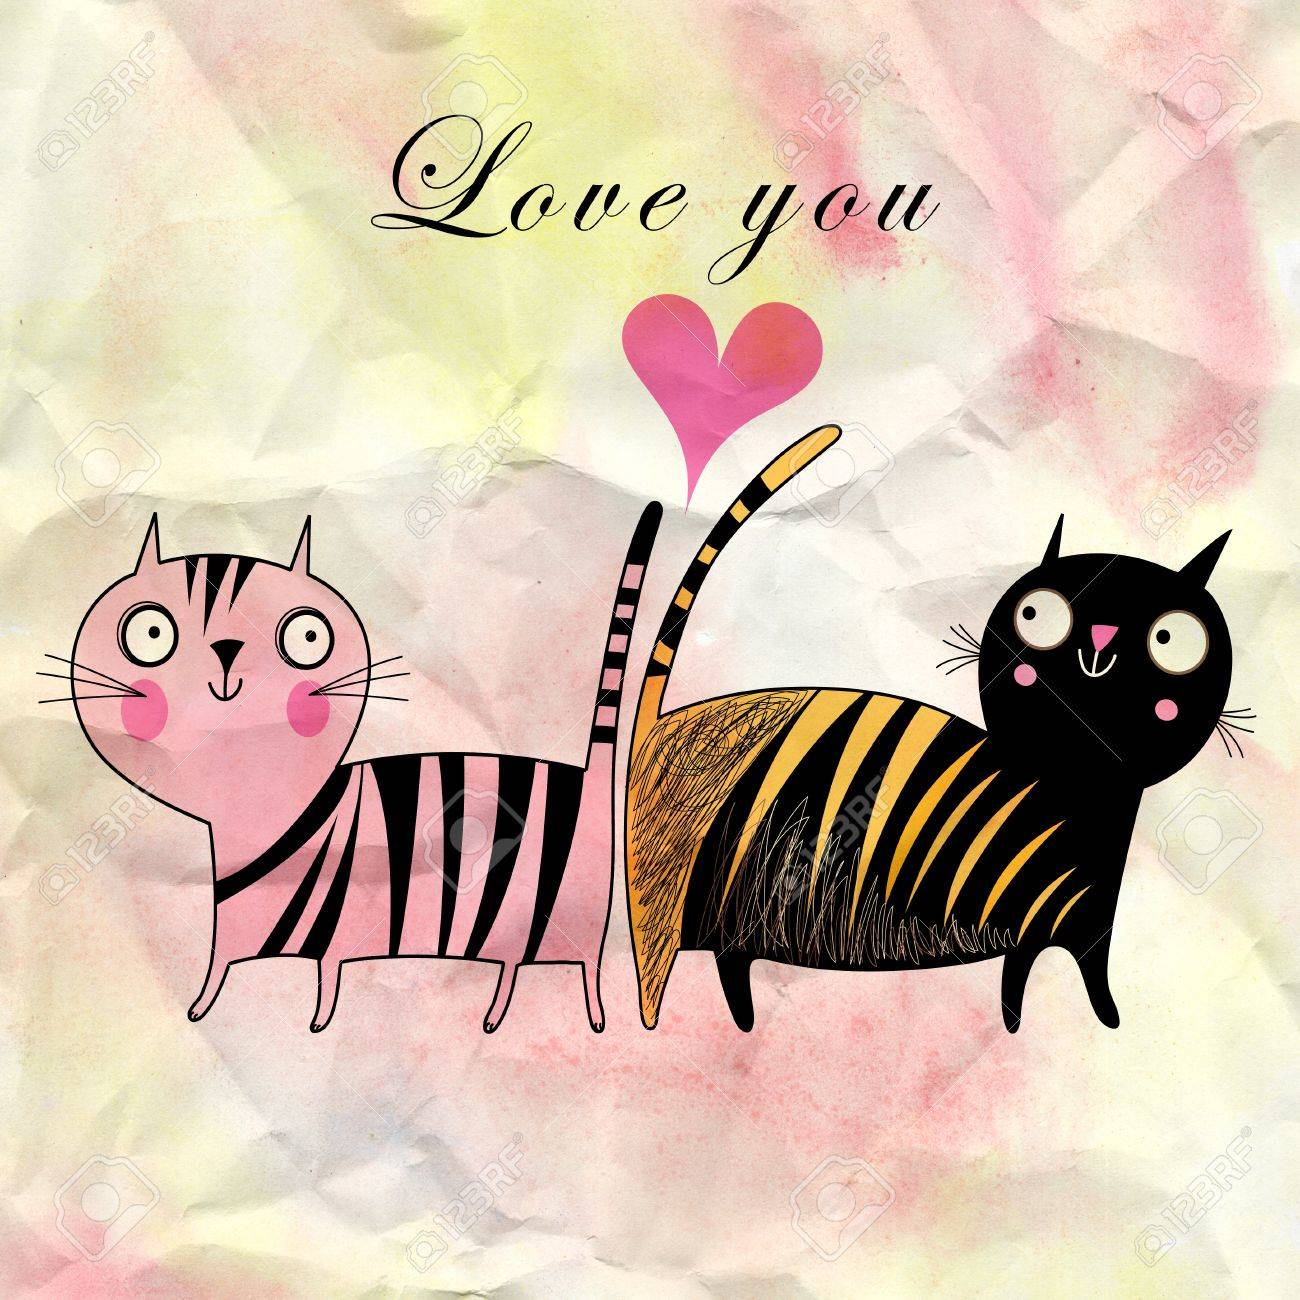 funny cats in love on watercolor background with a heart Stock Photo - 19376898